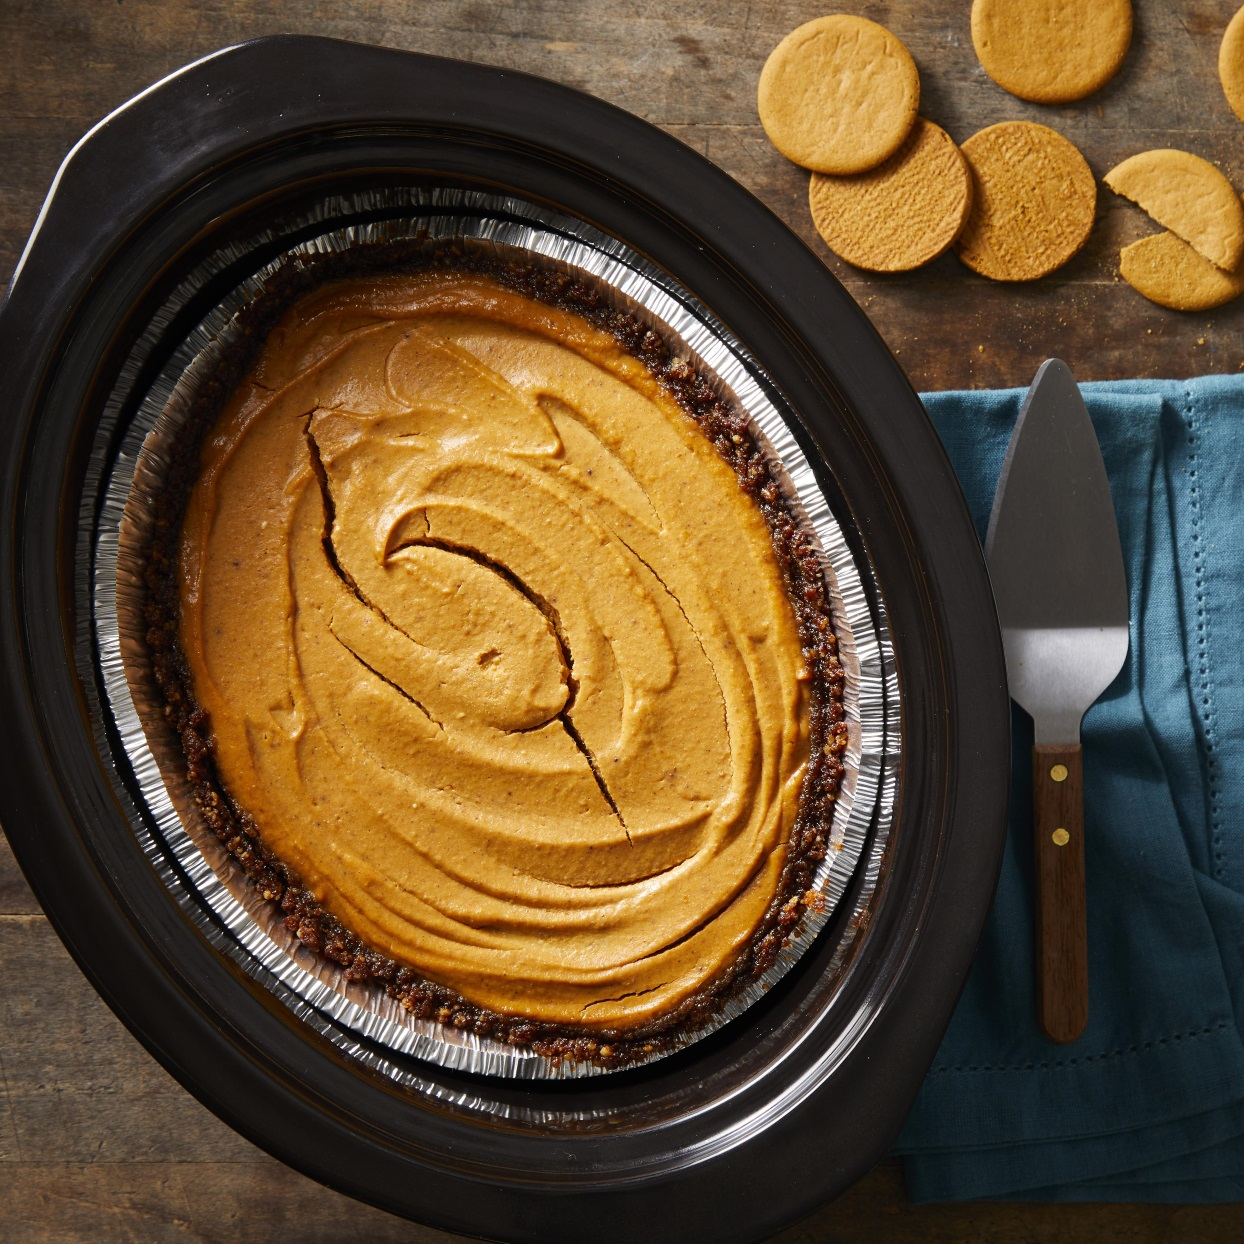 This easy slow-cooker pumpkin cheesecake with a gingersnap-and-walnut crust is full of all your favorite fall flavors. Cooking dessert in the slow cooker frees up oven space, making this healthy dessert perfect for entertaining. It might just bump your regular old pumpkin pie off the Thanksgiving menu. To make this recipe gluten-free, swap out the regular gingersnap cookies for gluten-free gingersnaps.